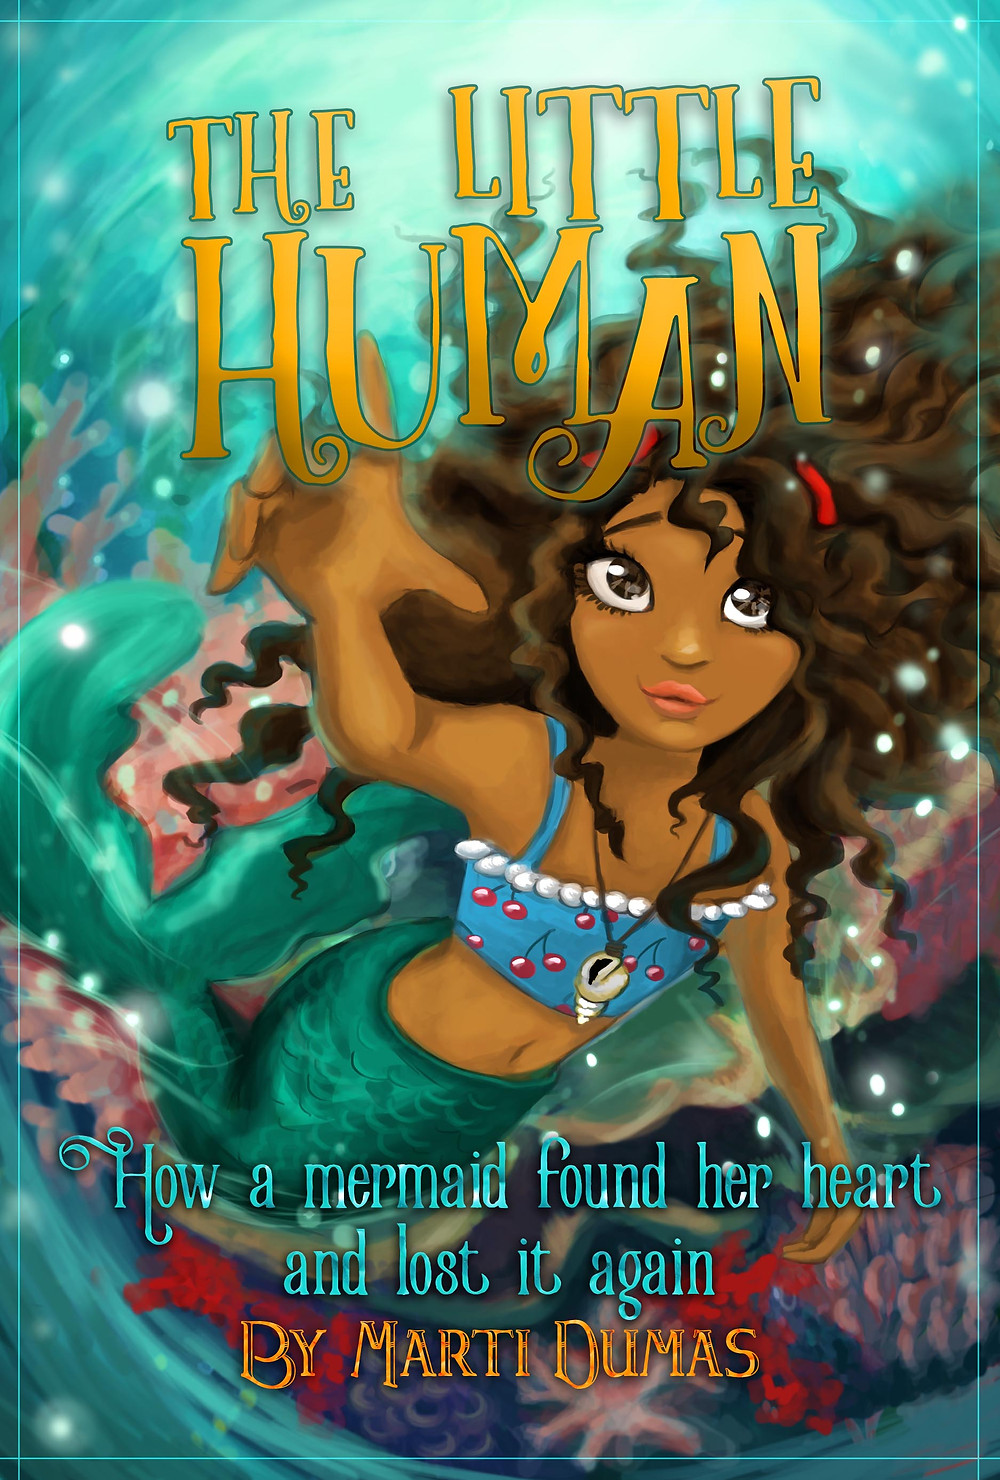 A young mermaid with brown skin, large brown eyes, and dark brown hair